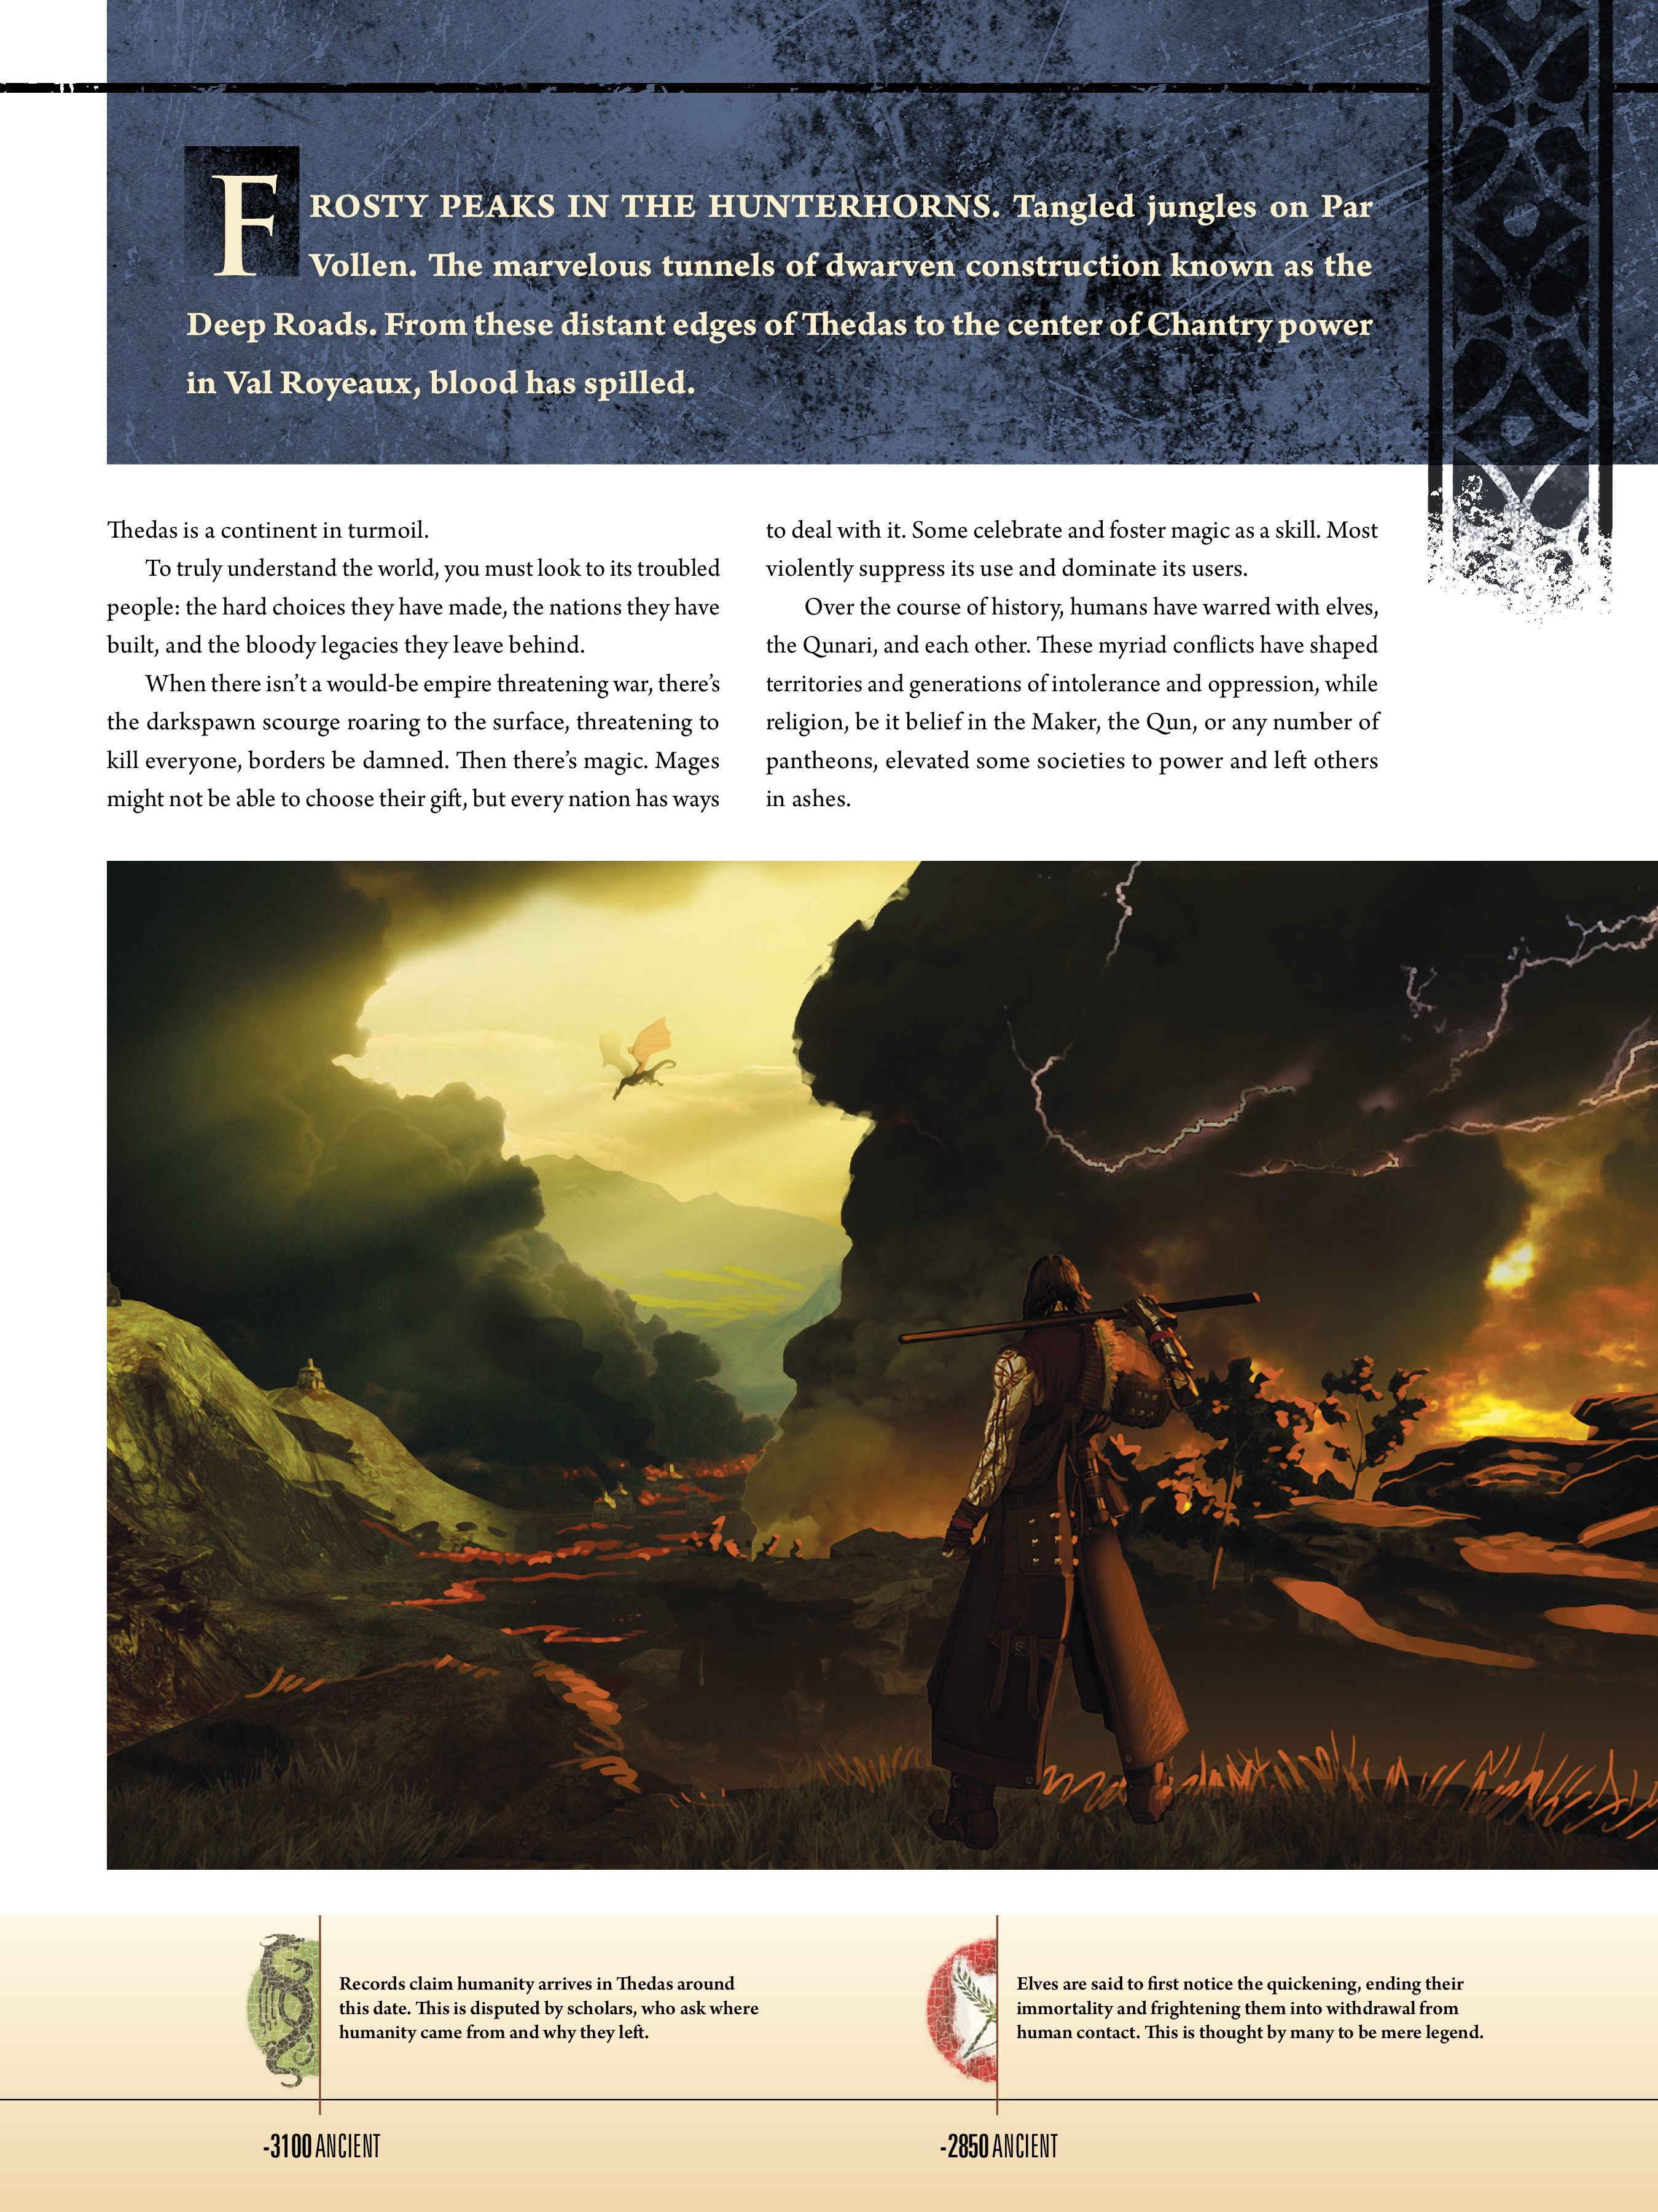 Read online Dragon Age: The World of Thedas comic -  Issue # TPB 1 - 9